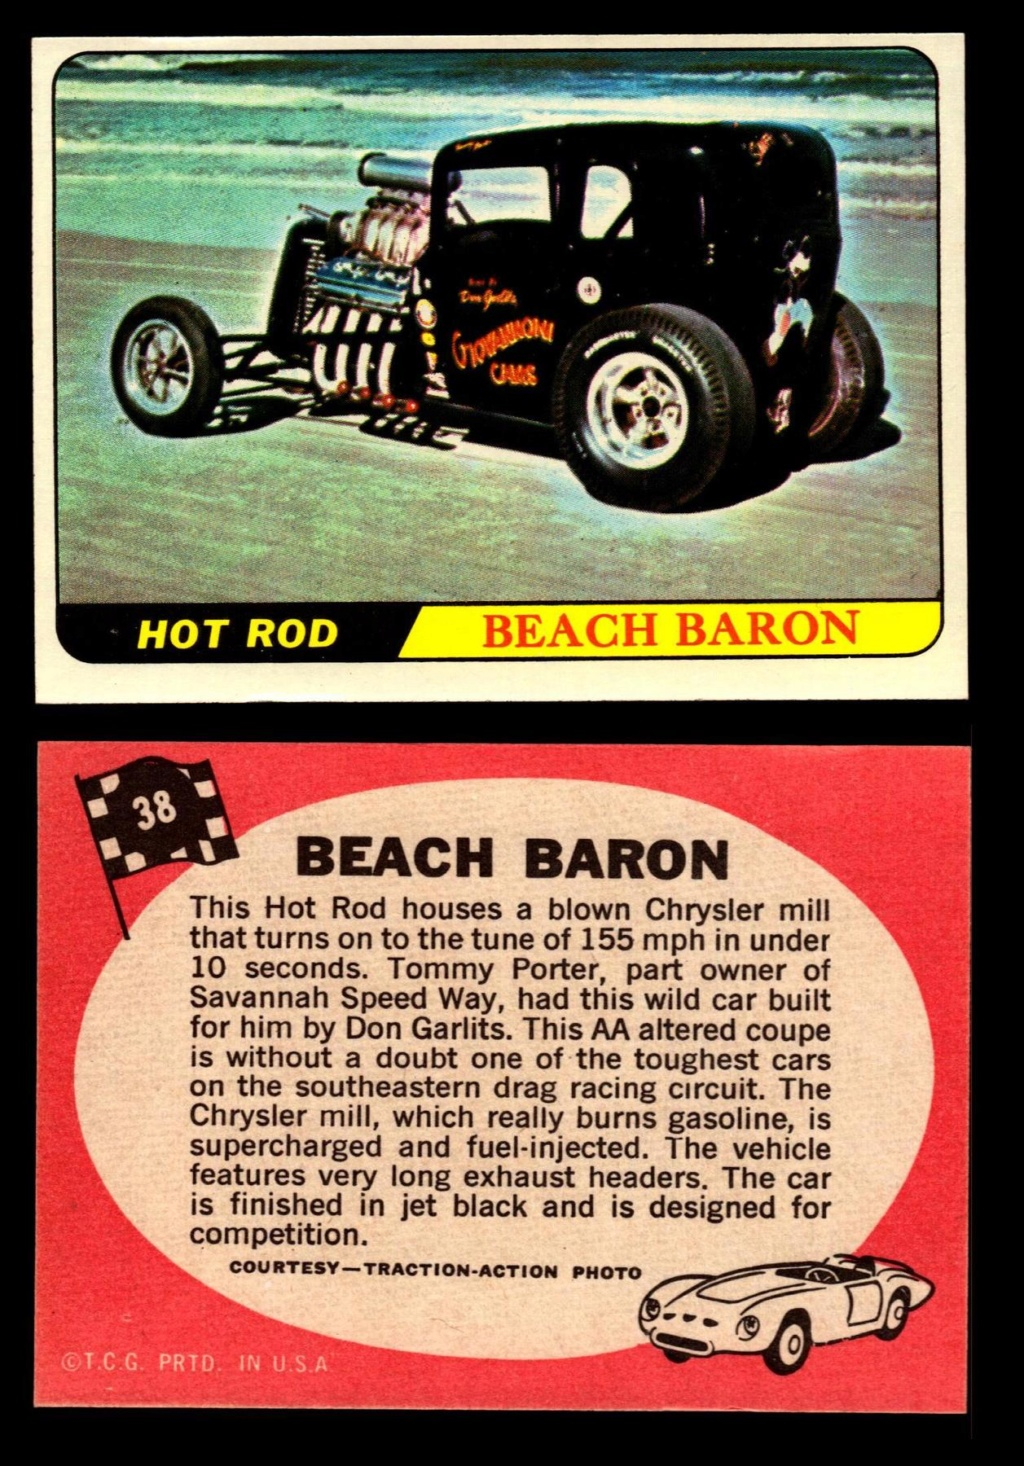 Hot Rods Topps - Vintage Trading Cards 1968 - Custom car - Dragster - Racer - Dream car - Barris Kustom City - Ed Roth Darrill Starbird, Gene Winfield, Bill Cuchenberry - Page 2 38_a0110